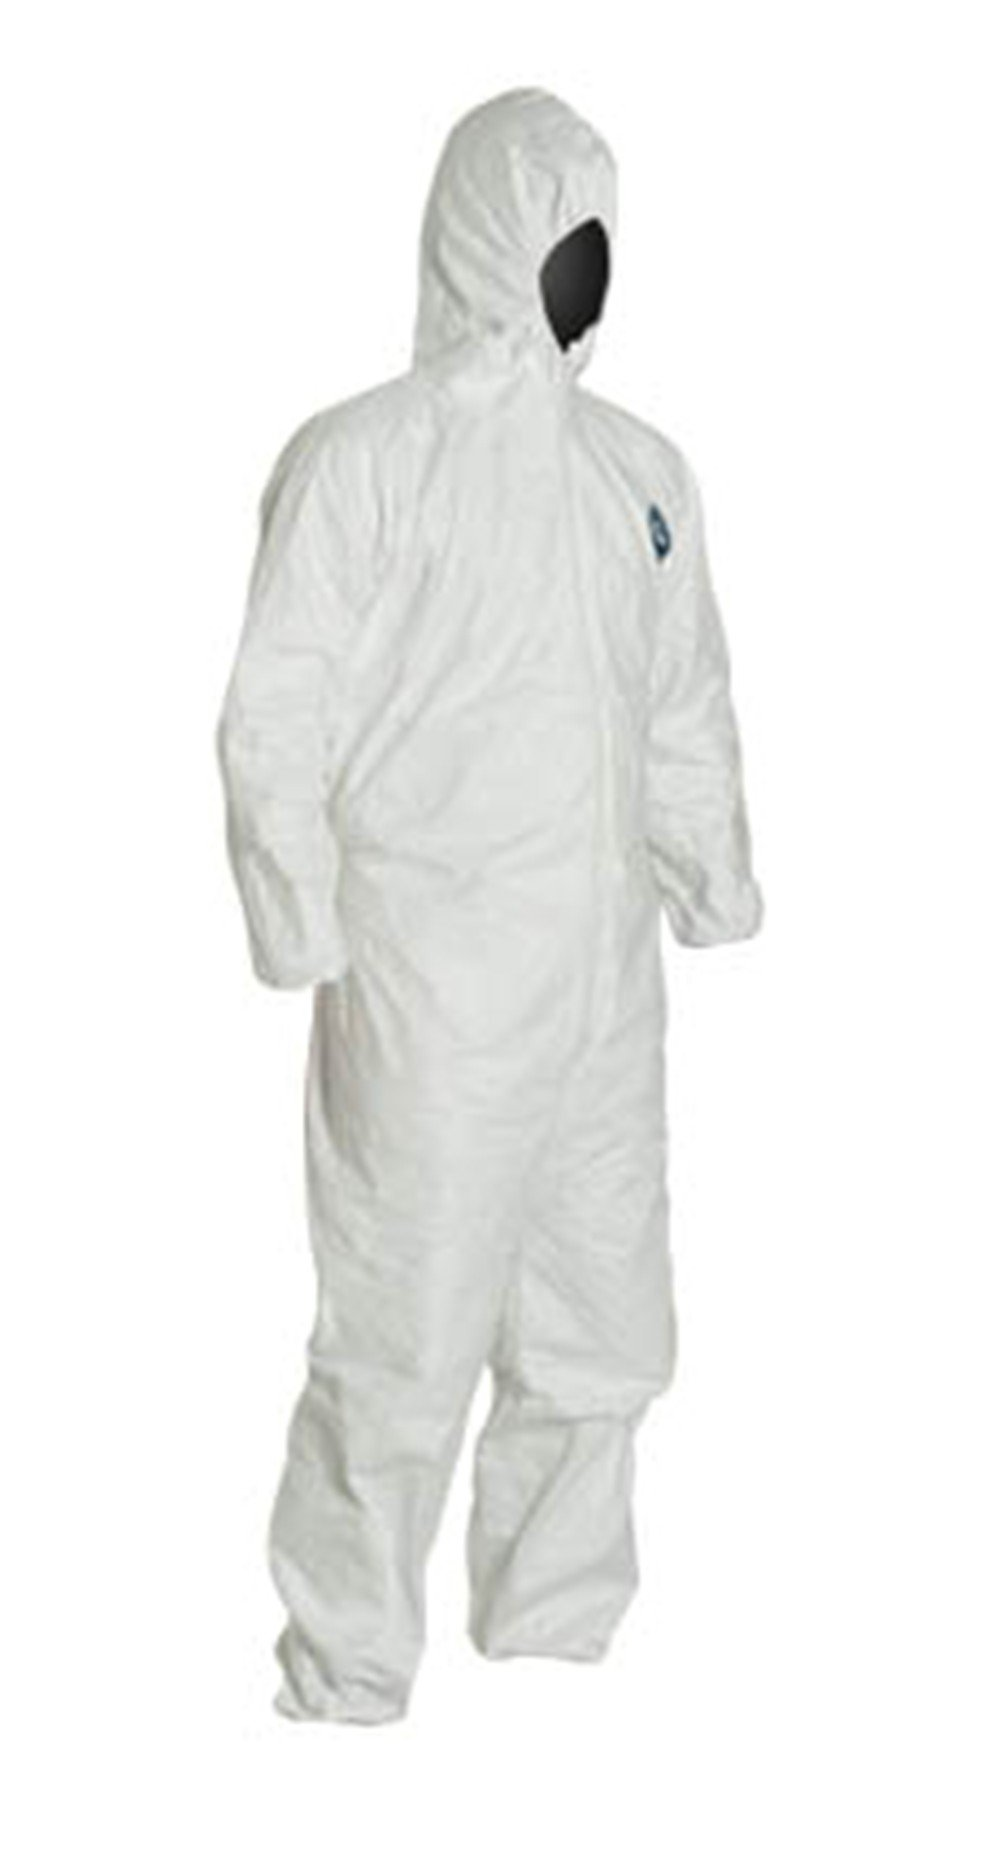 2XL Tyvek Coverall W/ Hood, Zipper, Elastic Wrist & Ankle (2XL-10 Suits) TY127S WH - 2XL - 10 by Tyvek (Image #2)